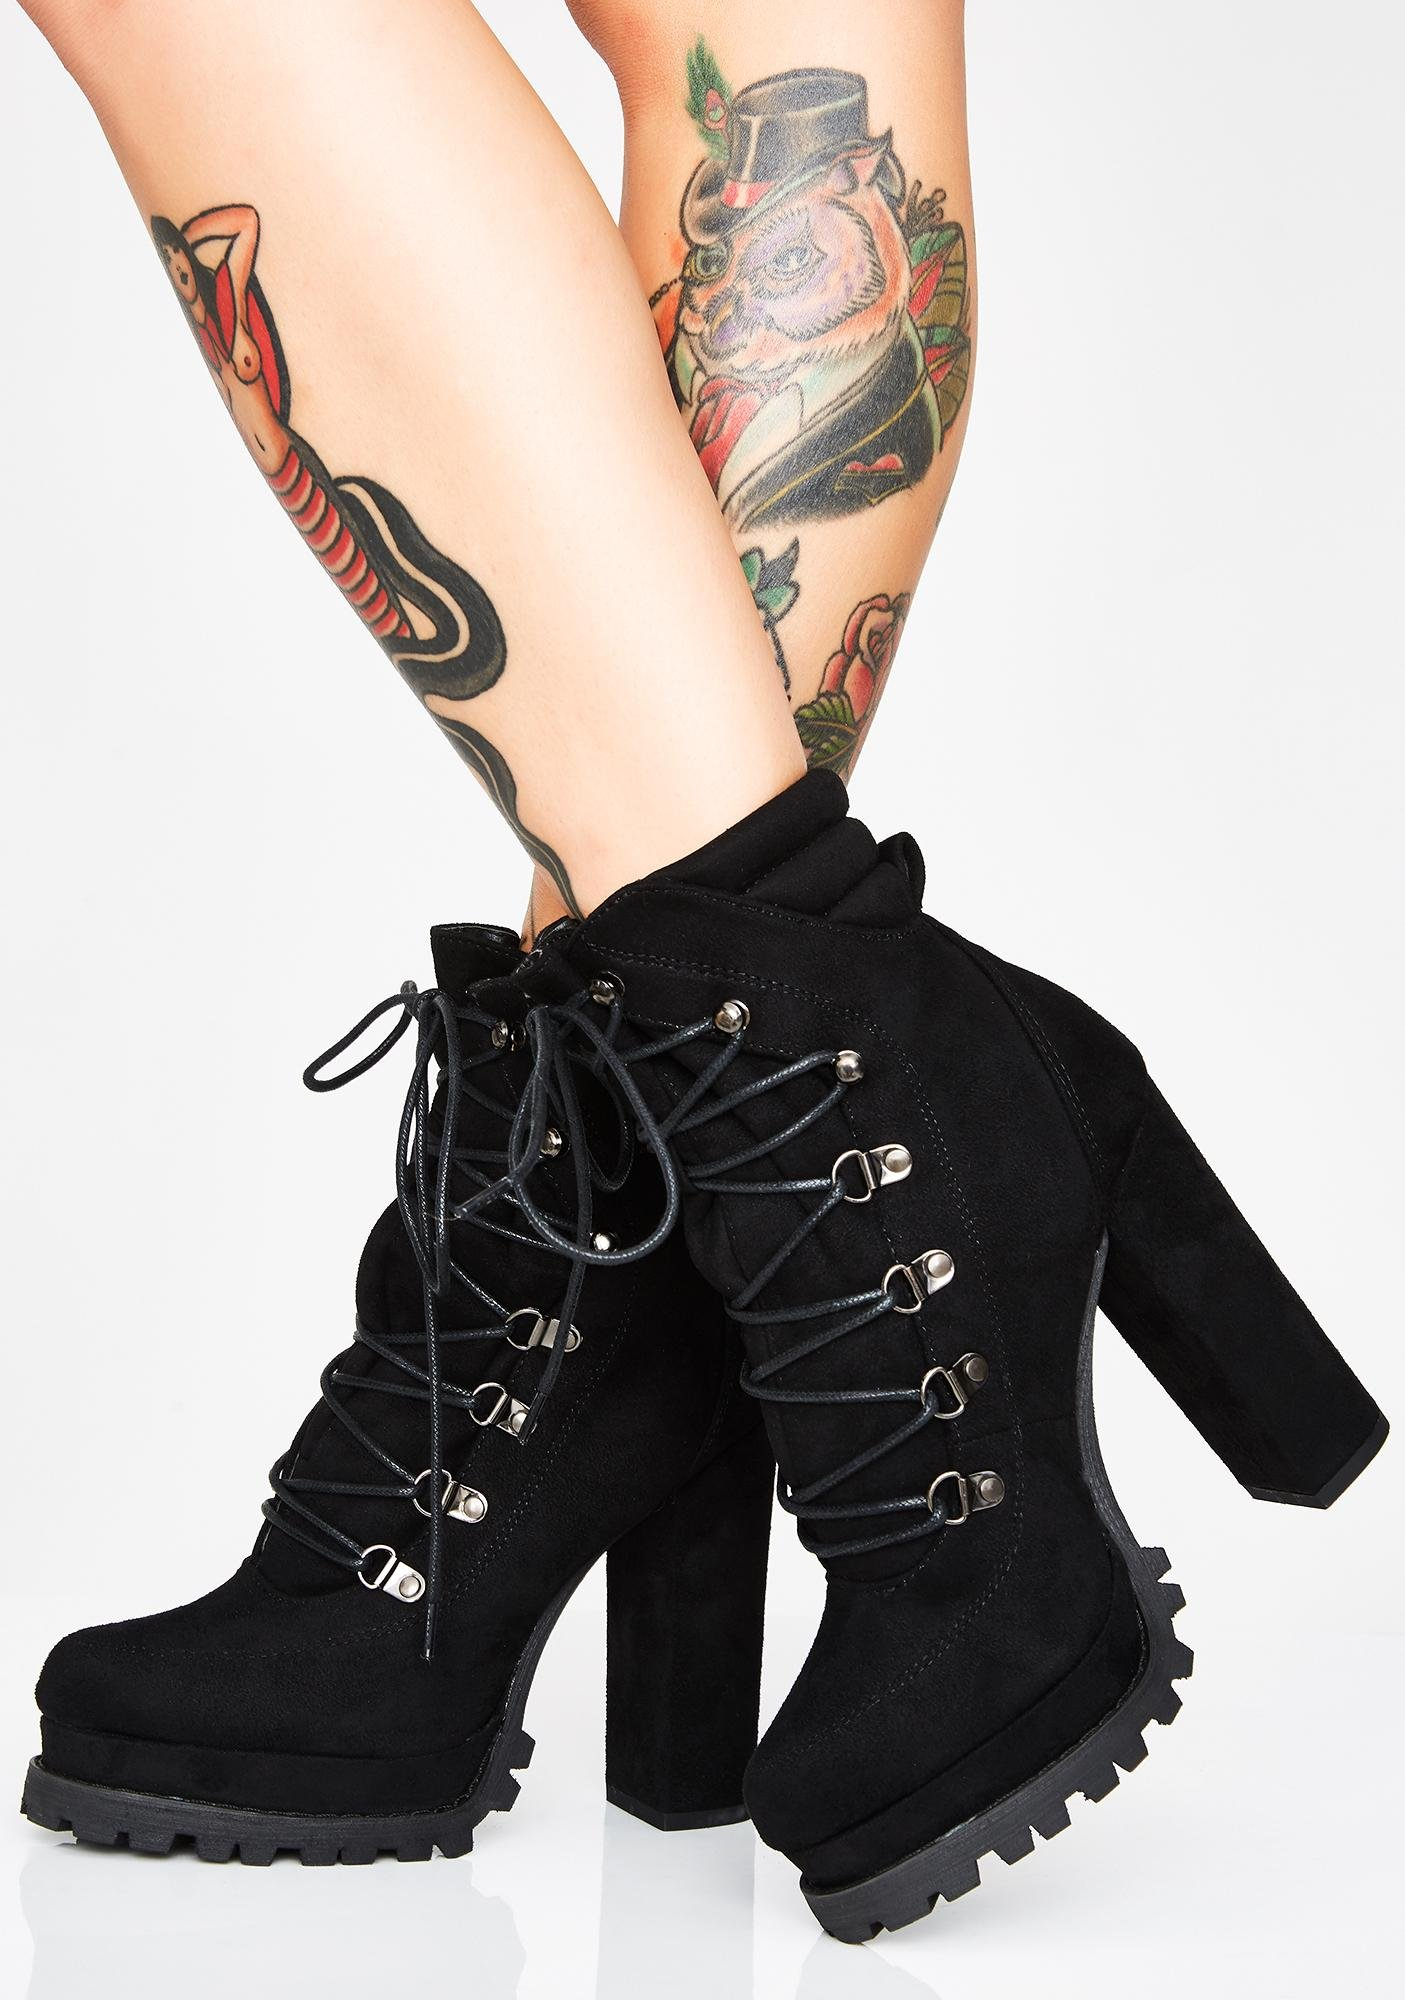 Dark Chicago Winds Ankle Boots